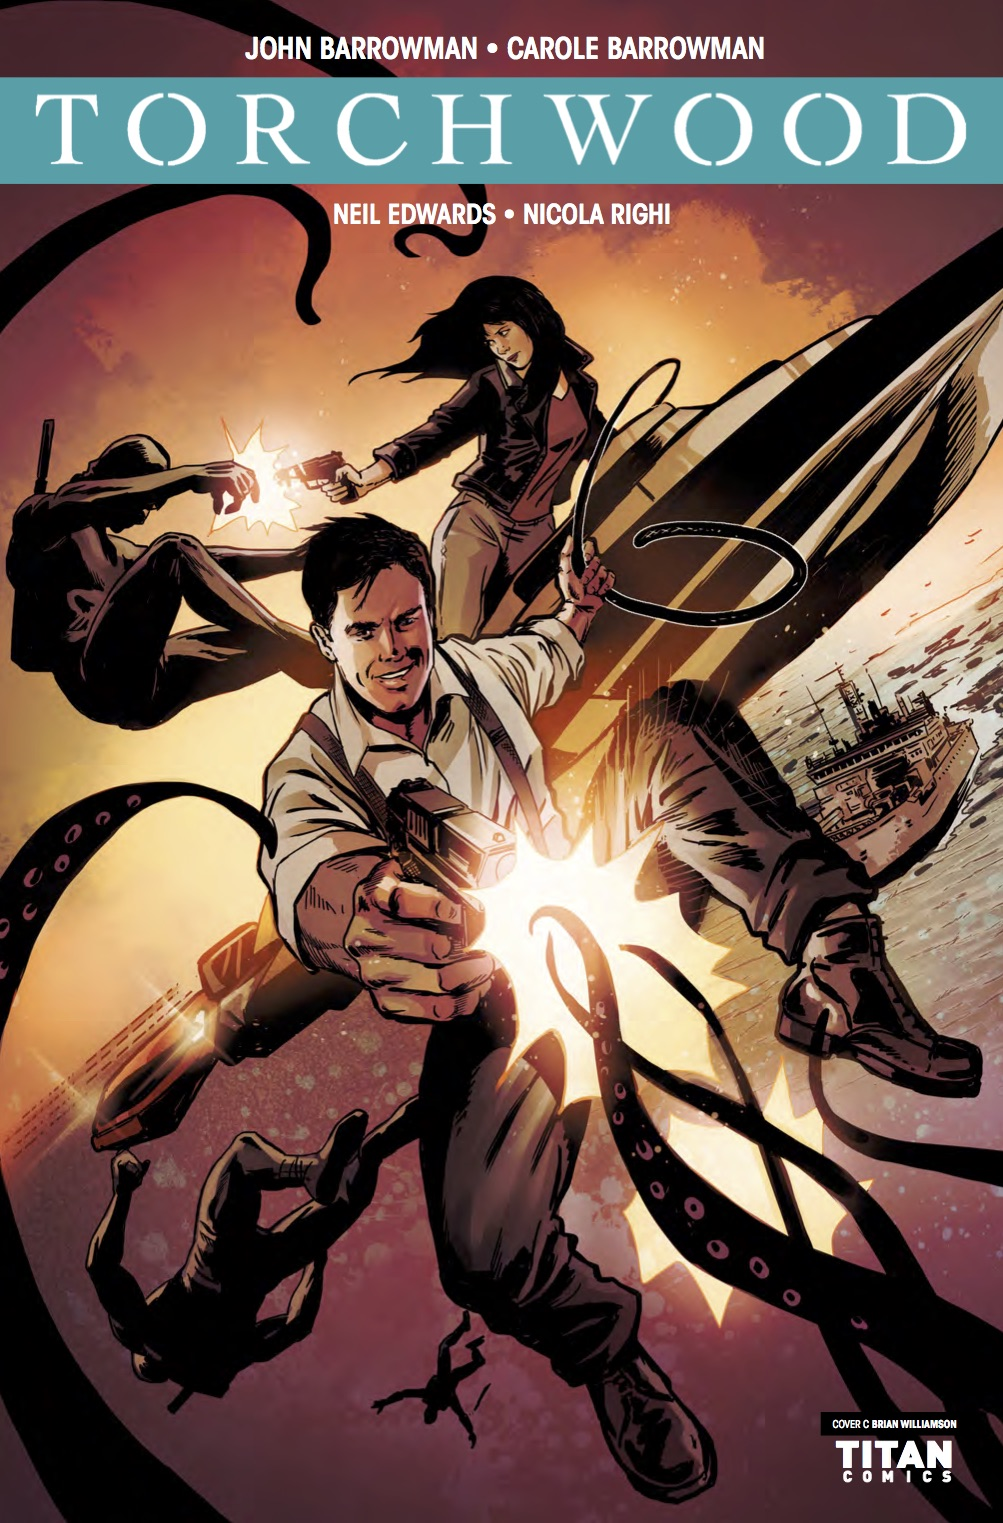 Torchwood Station Zero #4 Preview 1 (Credit: Titan / Brian Williamson)